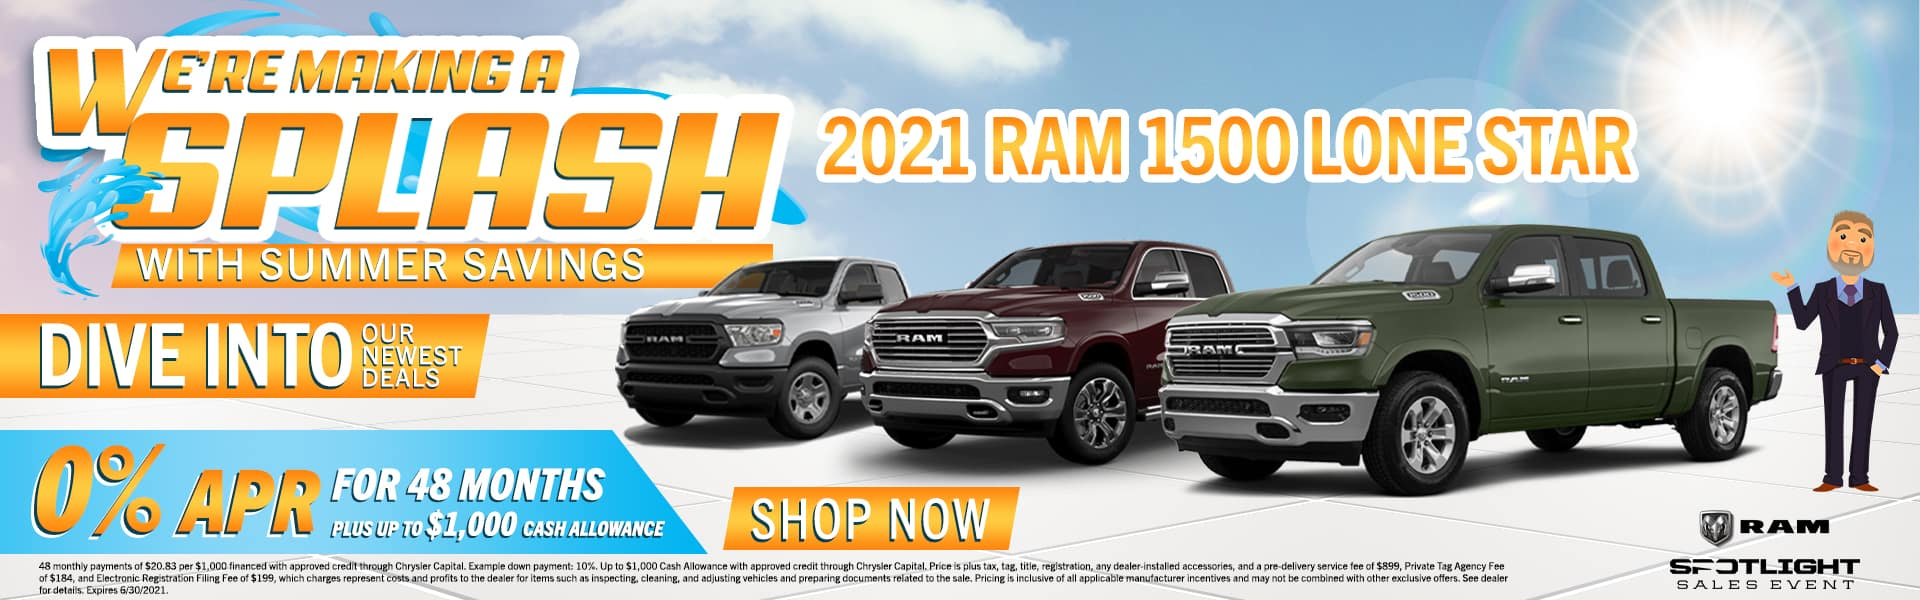 We're Making A Splash With Summer Savings | Dive Into Our Newest Deals | 2021 Ram 1500 Lone Star | 0% APR For 48 Months Plus Up To $1,000 Cash Allowance